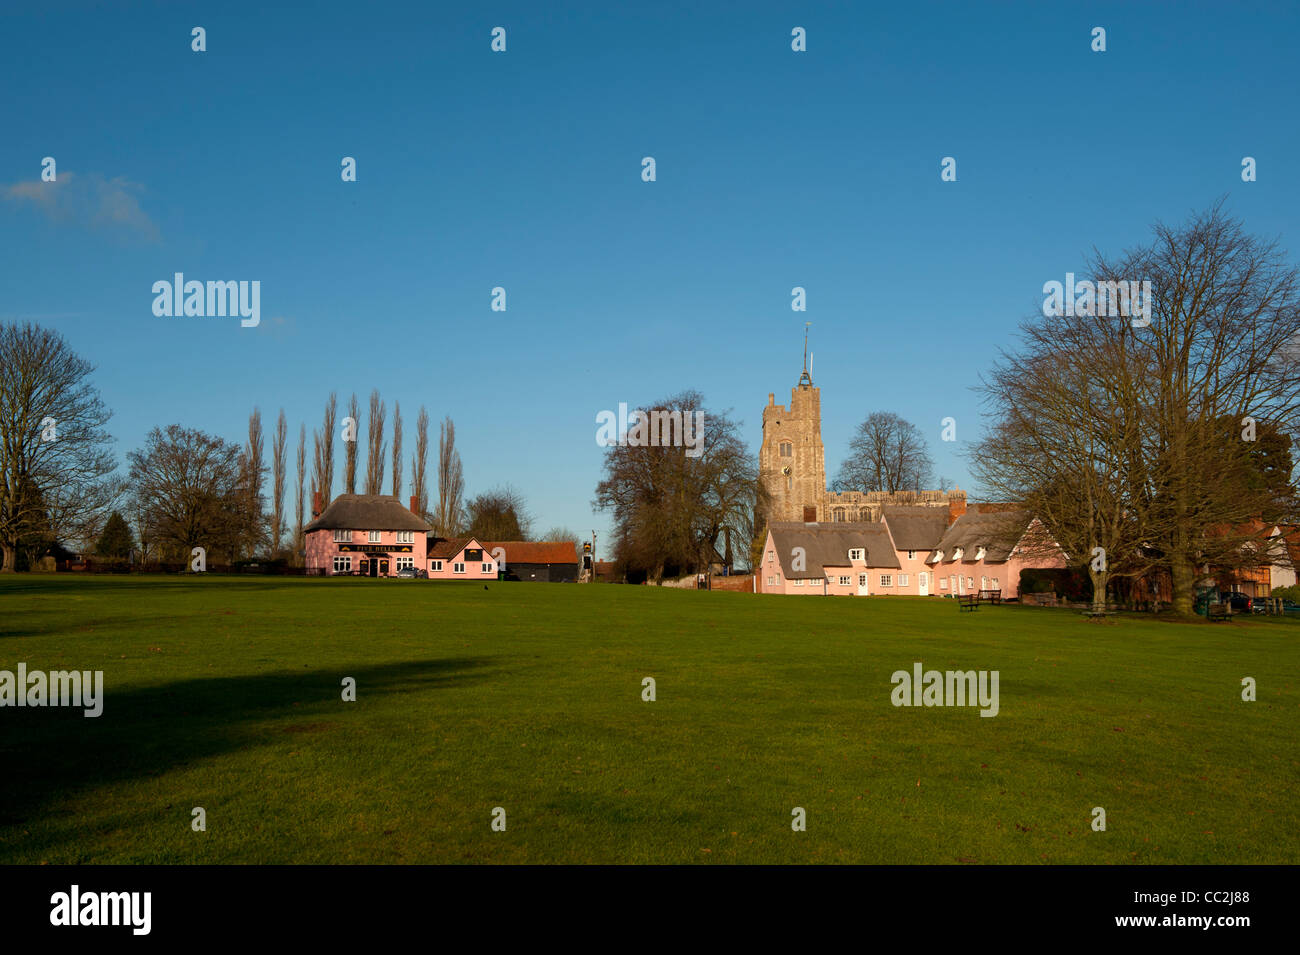 Cavendish,Suffolk,England. The village Green and St Mary's Church, one of the most beautiful villages in England. - Stock Image